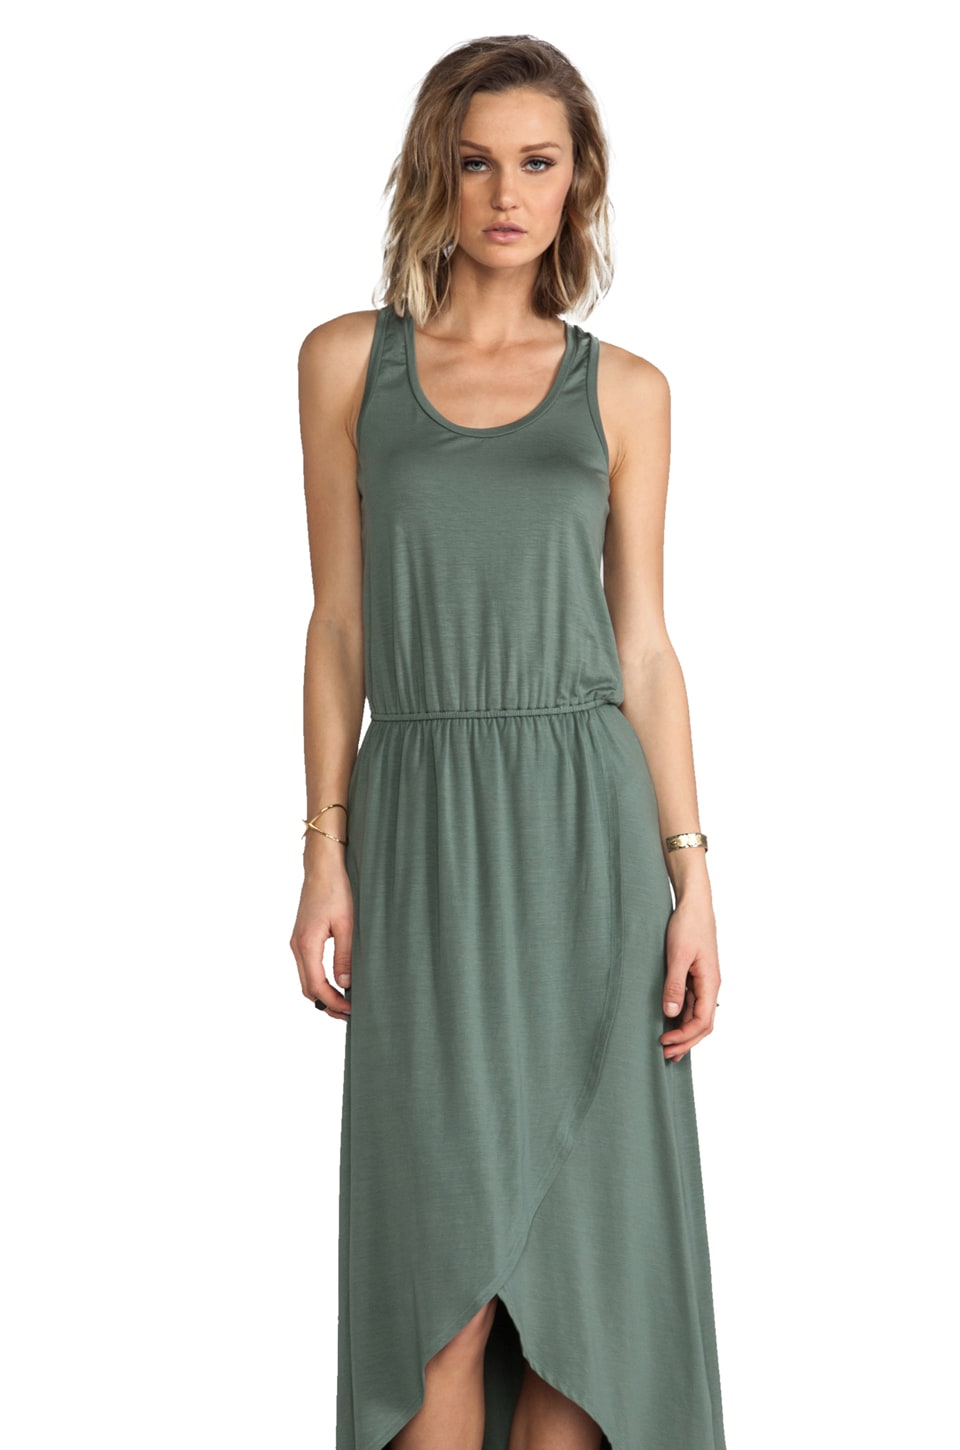 Splendid Hi-Lo Tank Dress in Camo Green